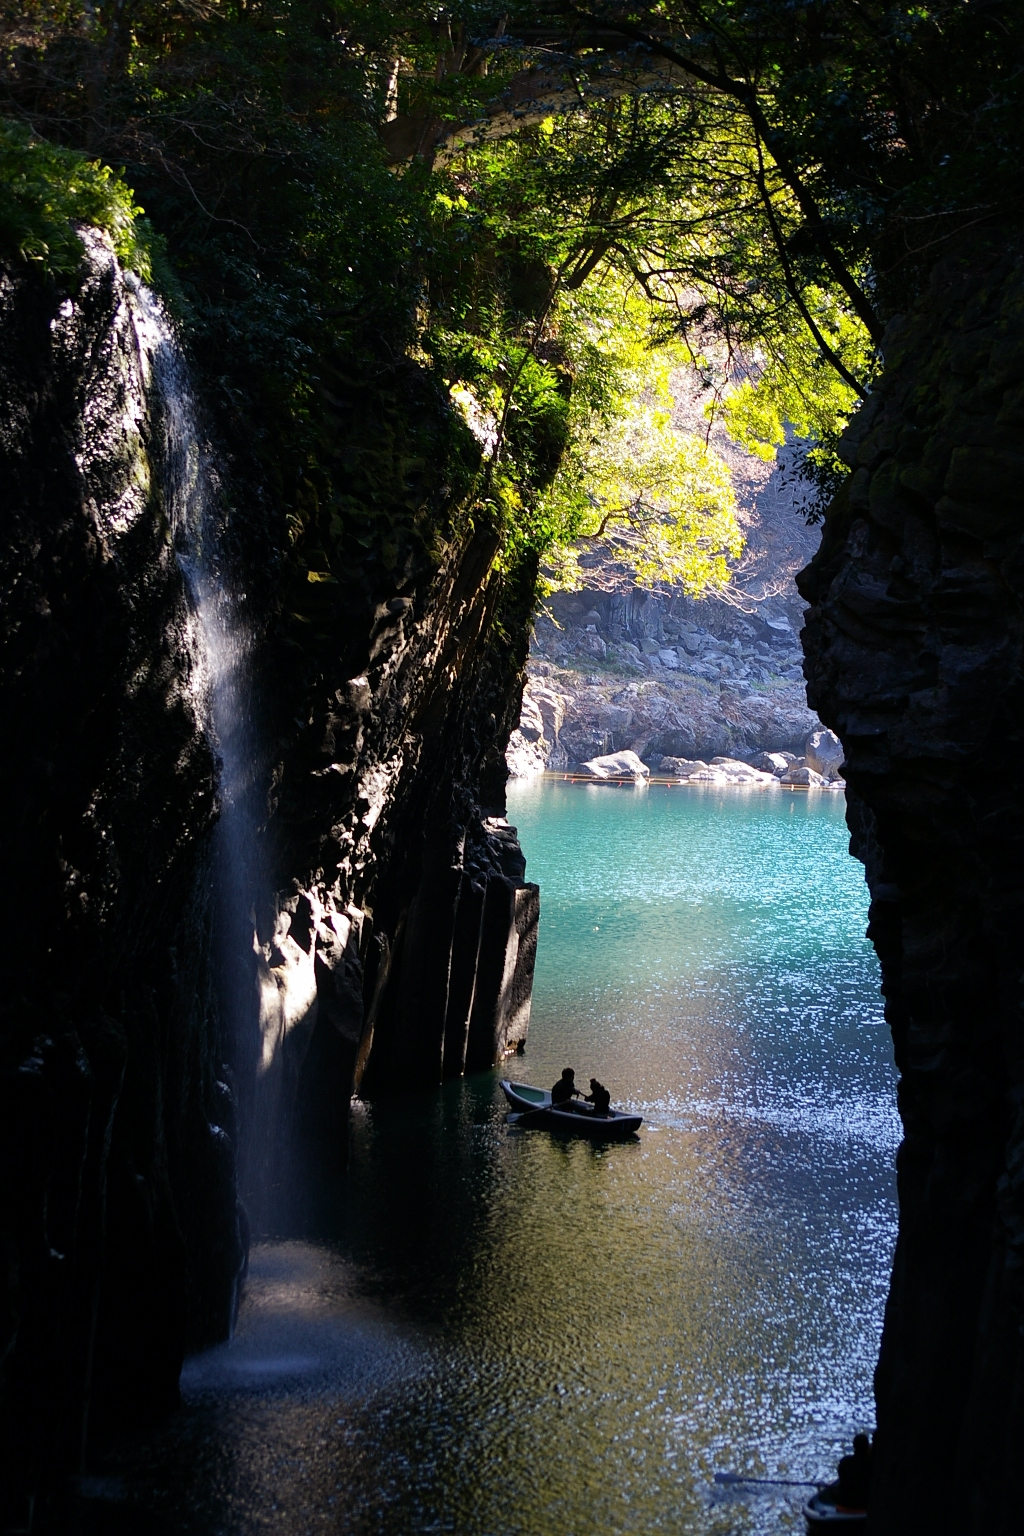 Takachiho Japan  city images : Takachiho gorge Wikimedia Commons